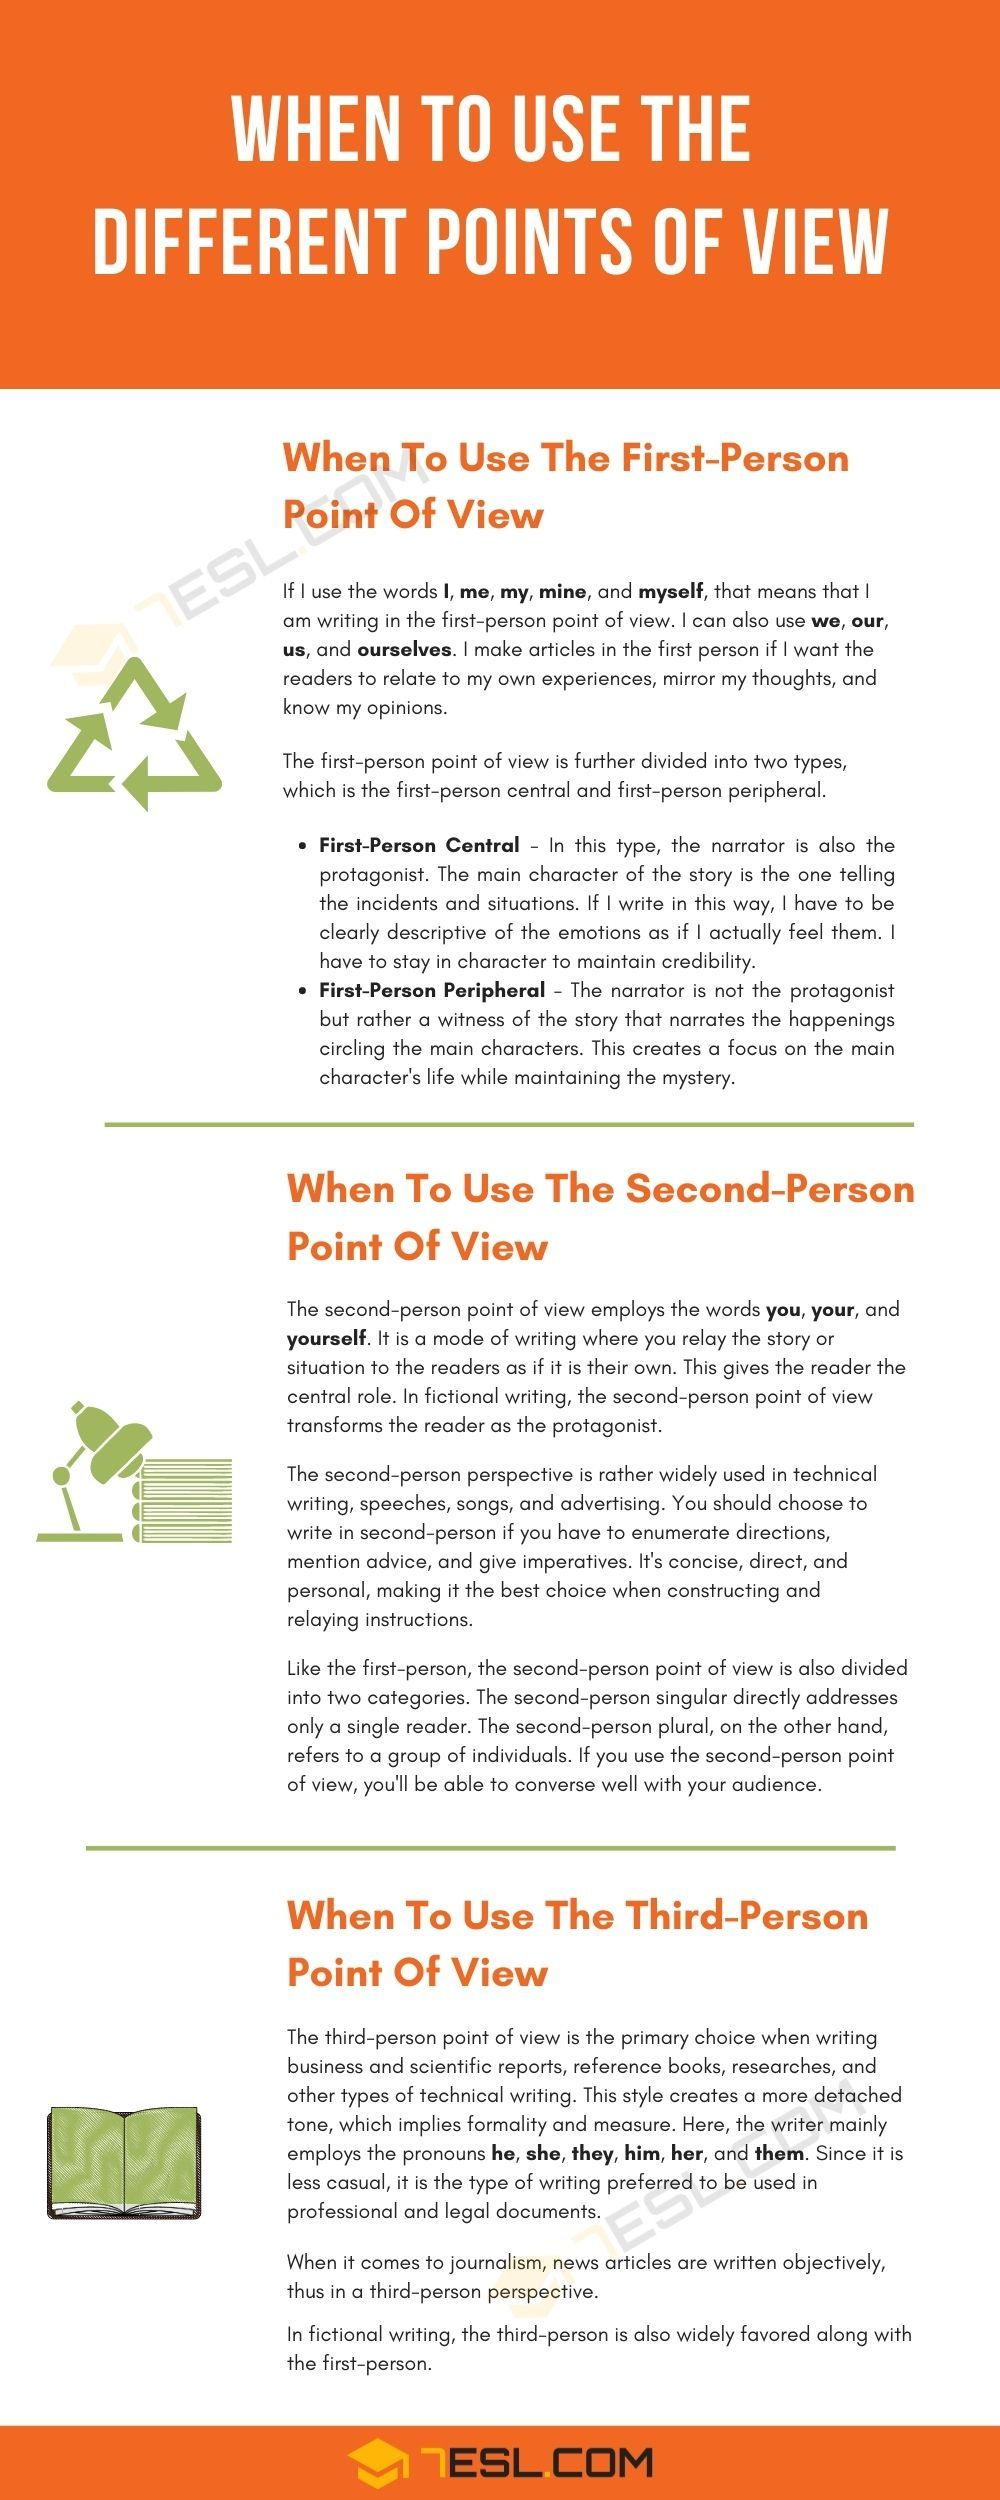 First, Second, and Third Person: When To Use The Different Points